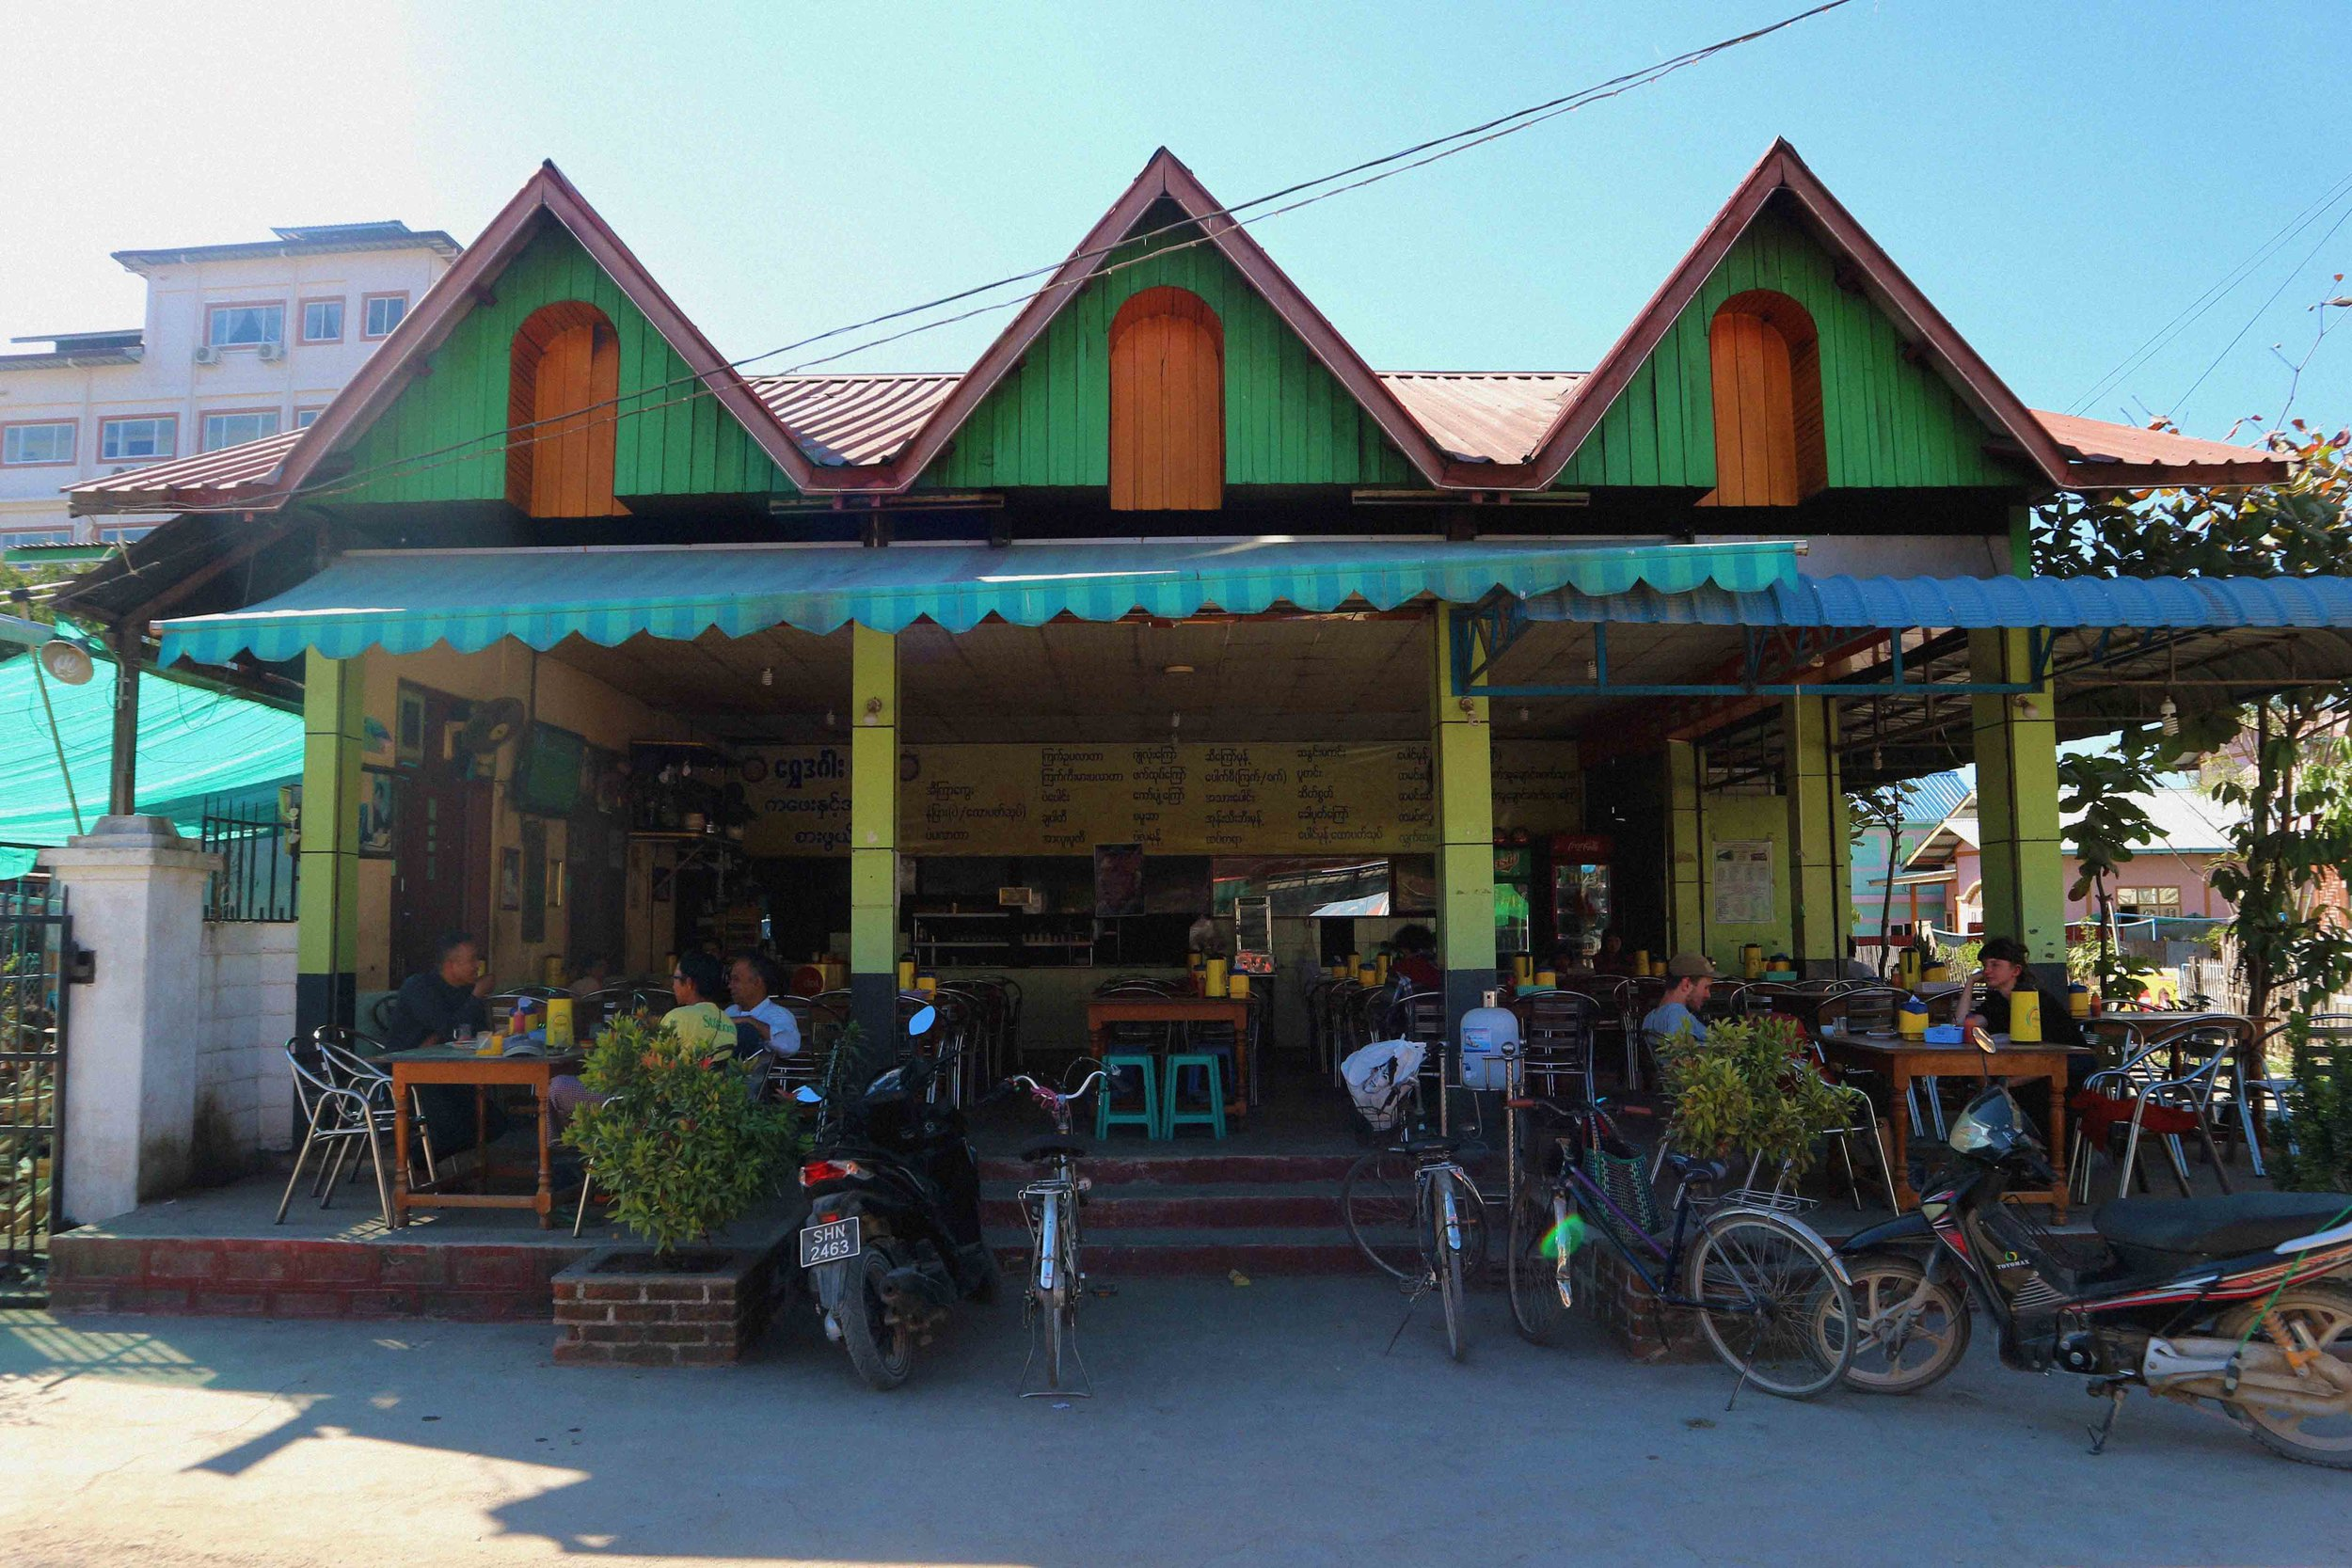 The local restaurant we recommend dining at in Nyuangshwe